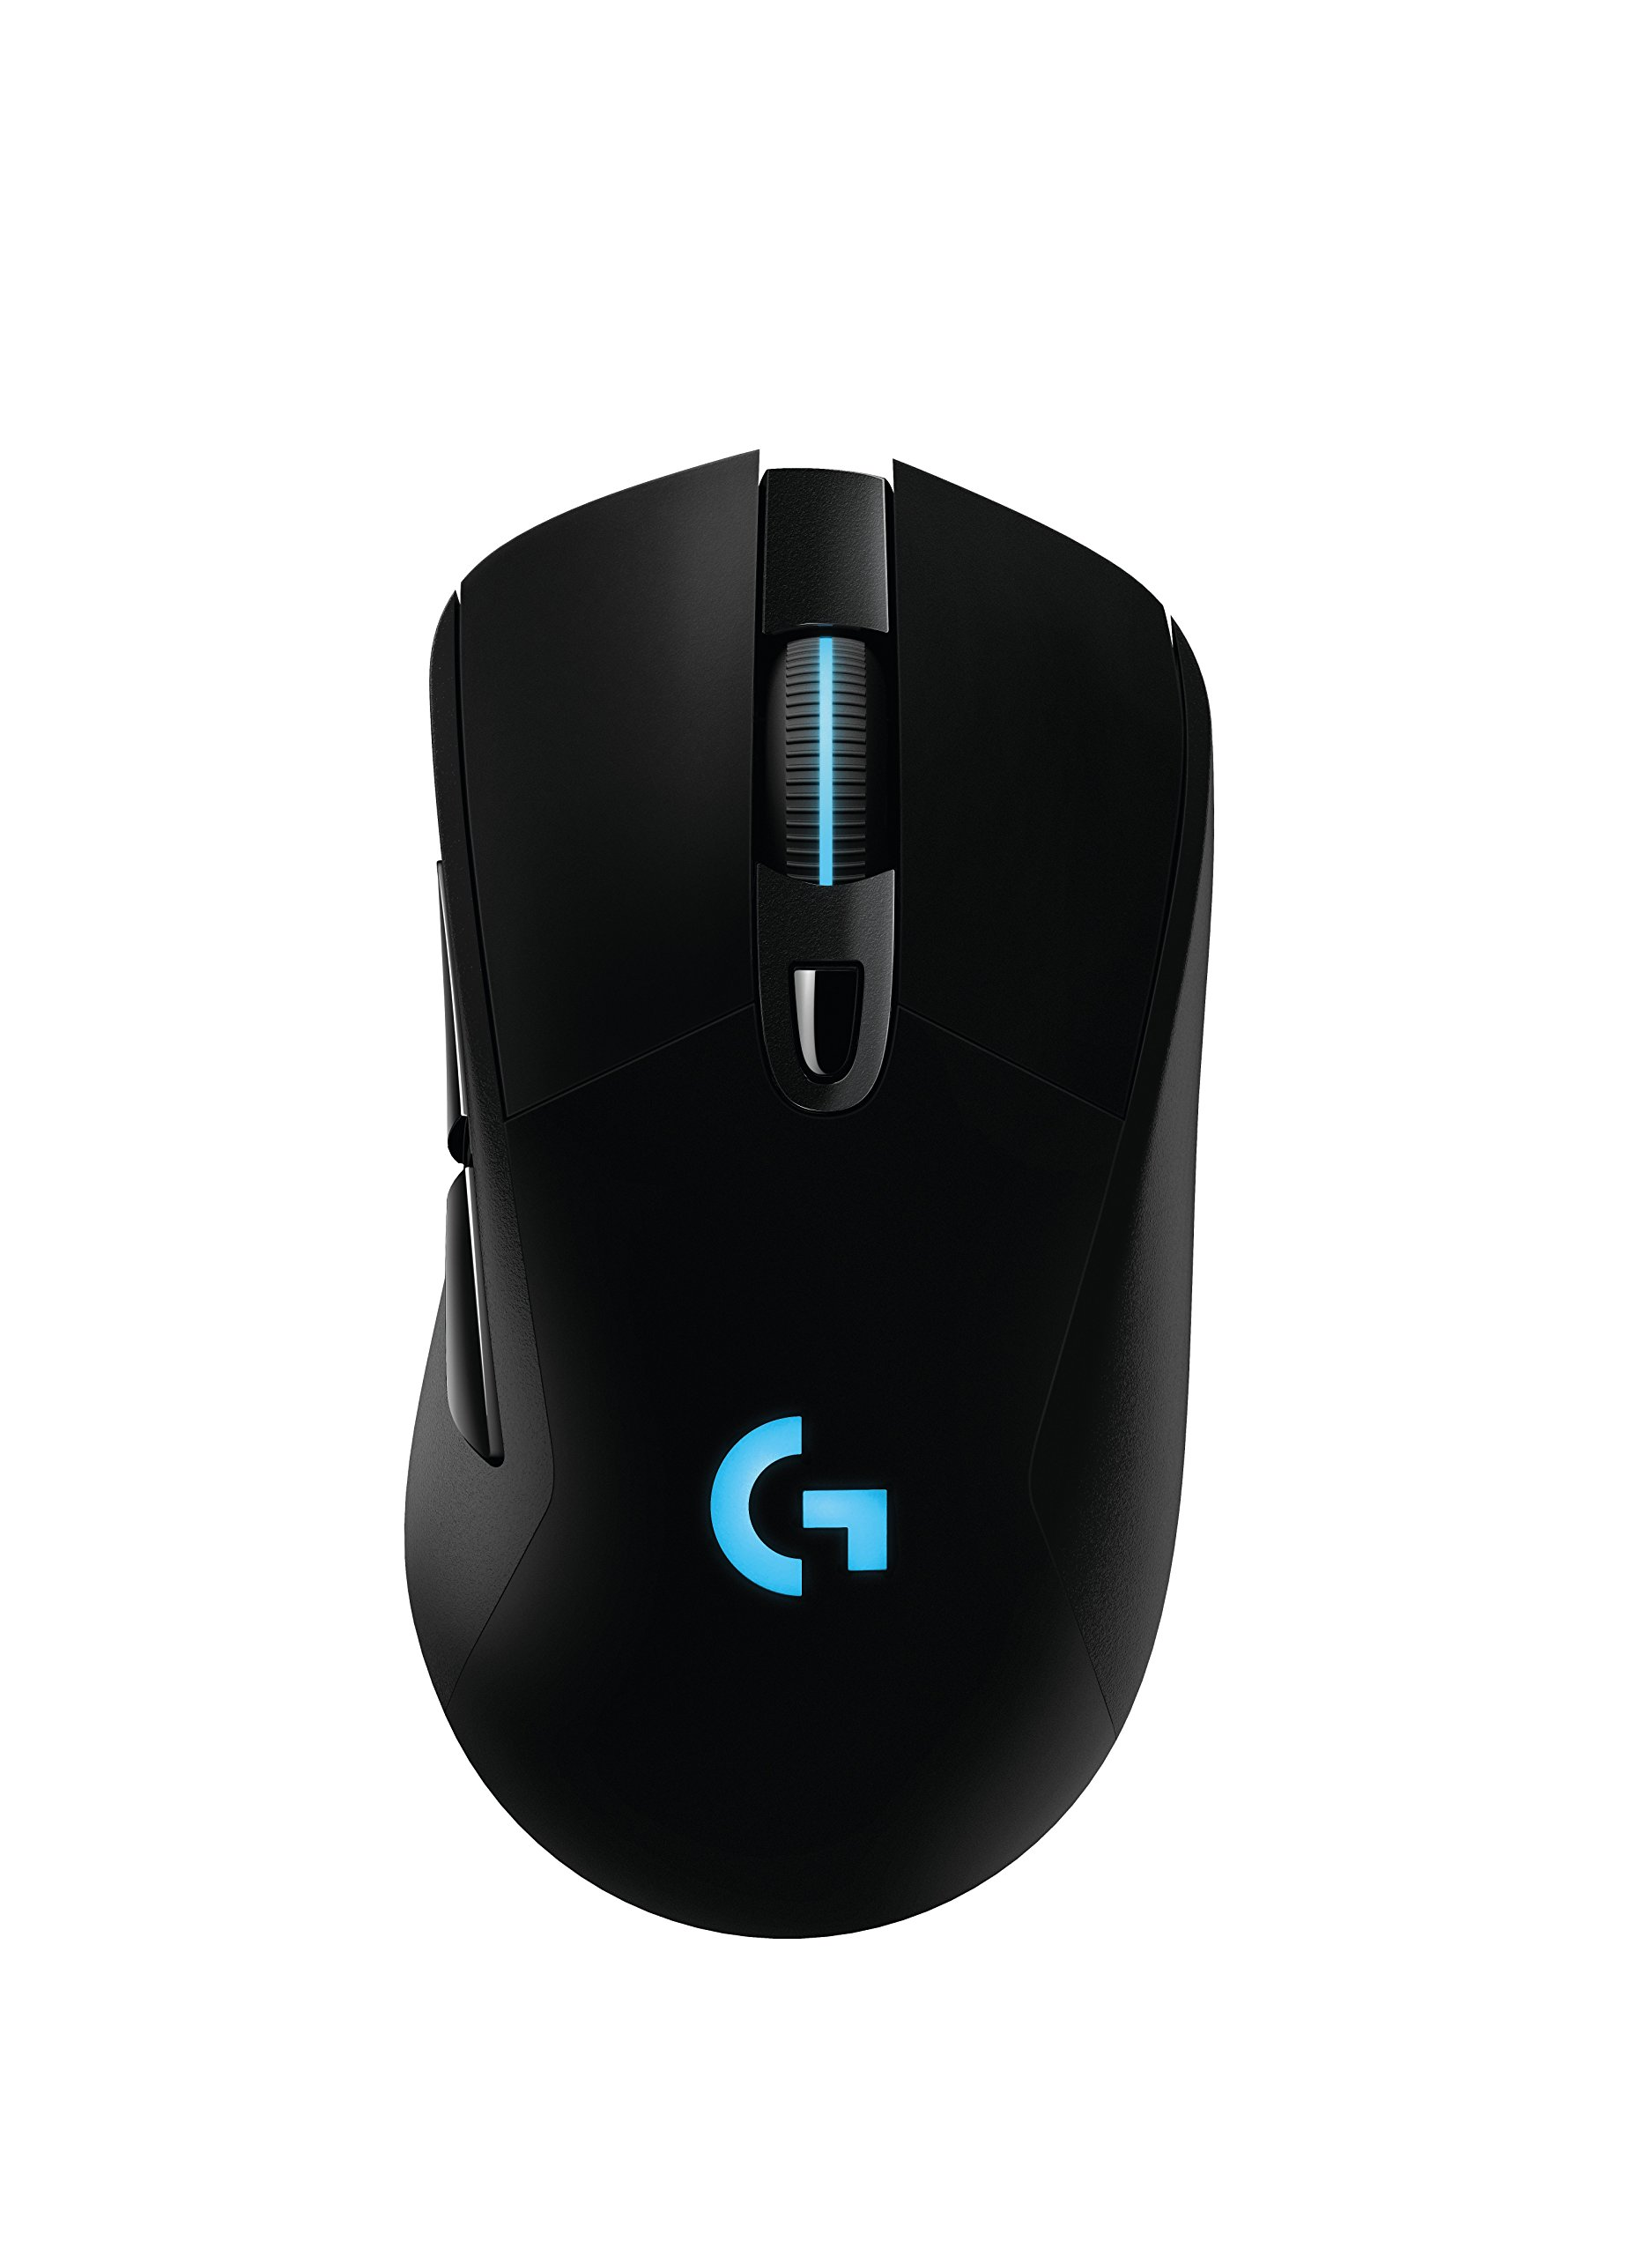 Logitech G703 Lightspeed Gaming Mouse with POWERPLAY Wireless Charging Compatibility by Logitech G